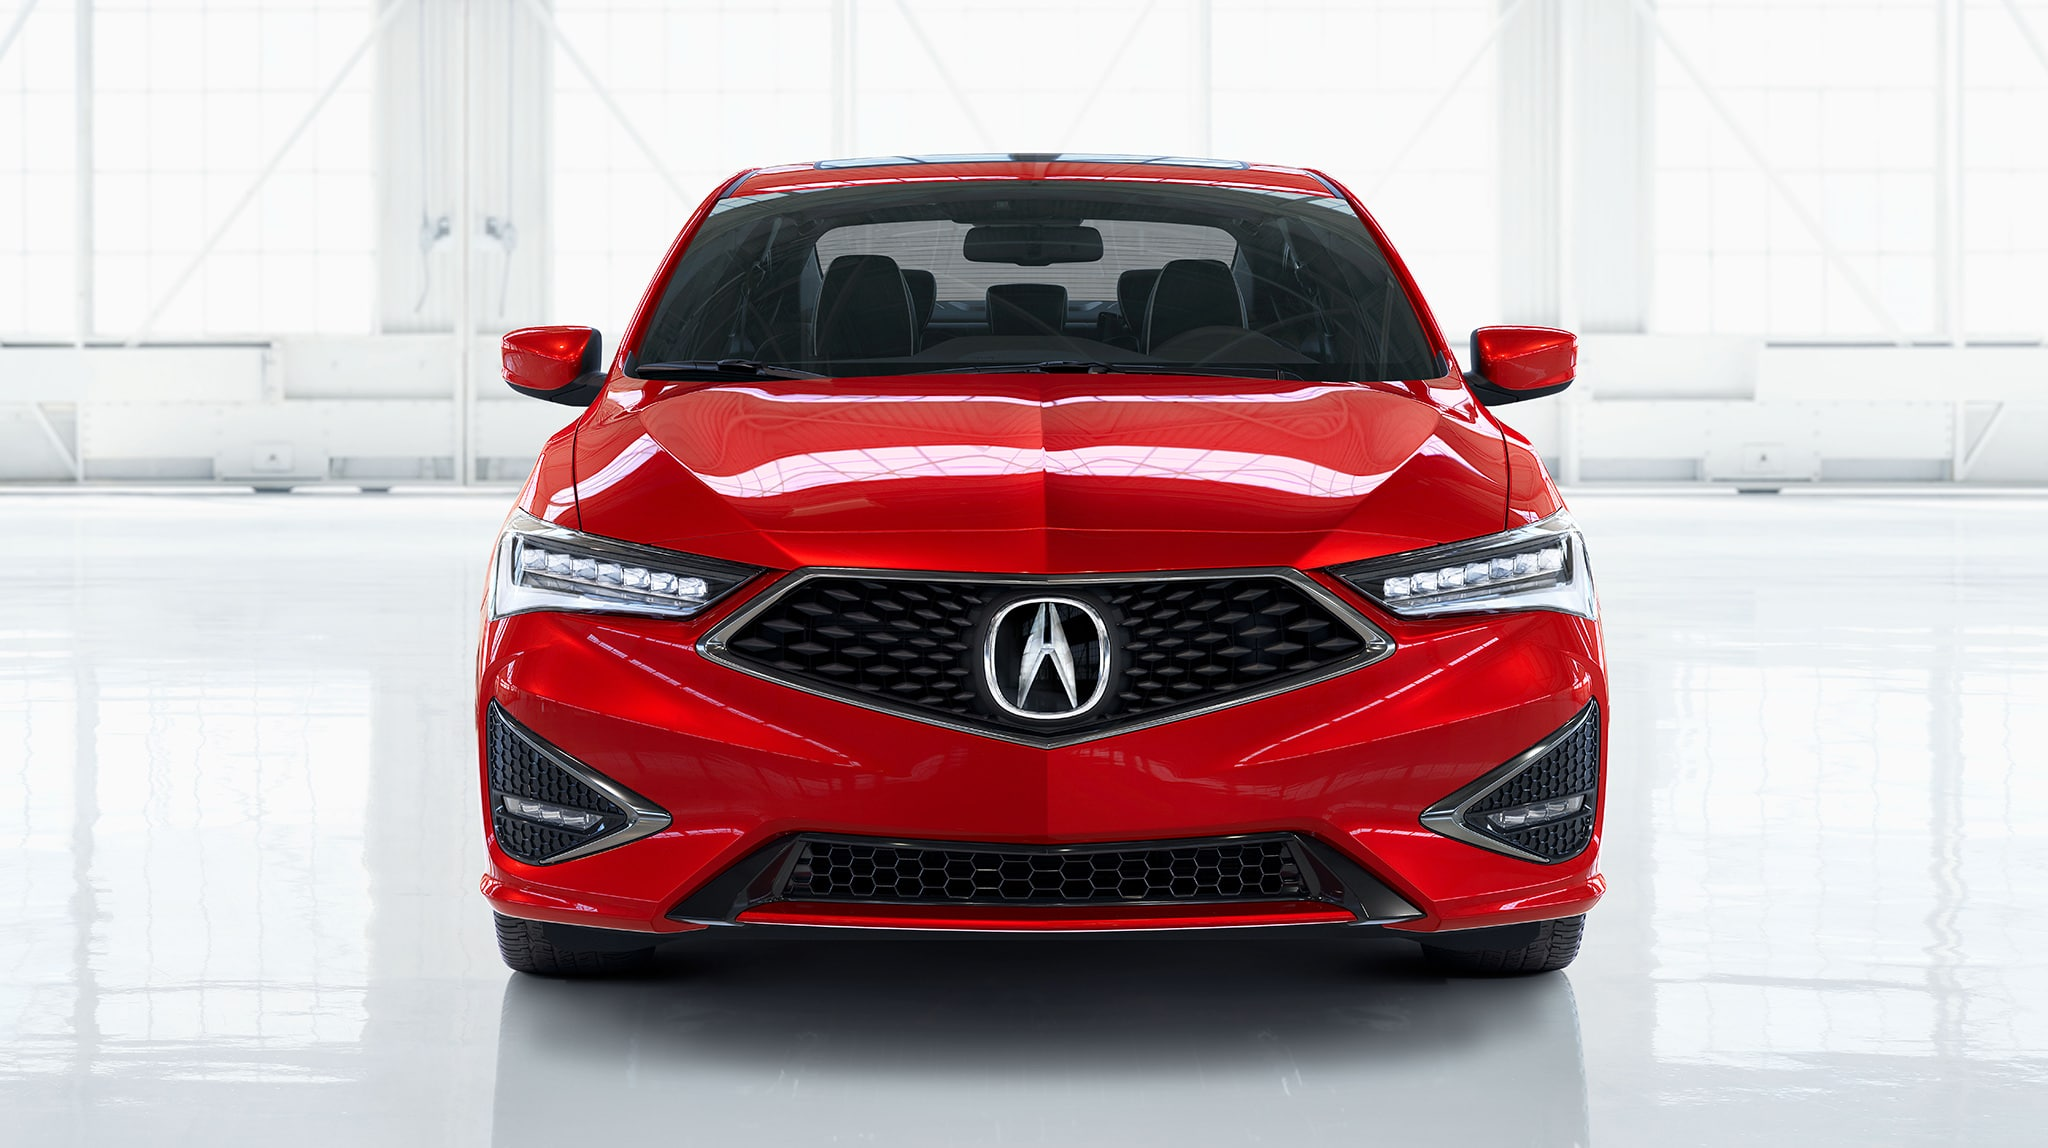 The 2019 Acura ILX: A Sedan with Broad Appeal